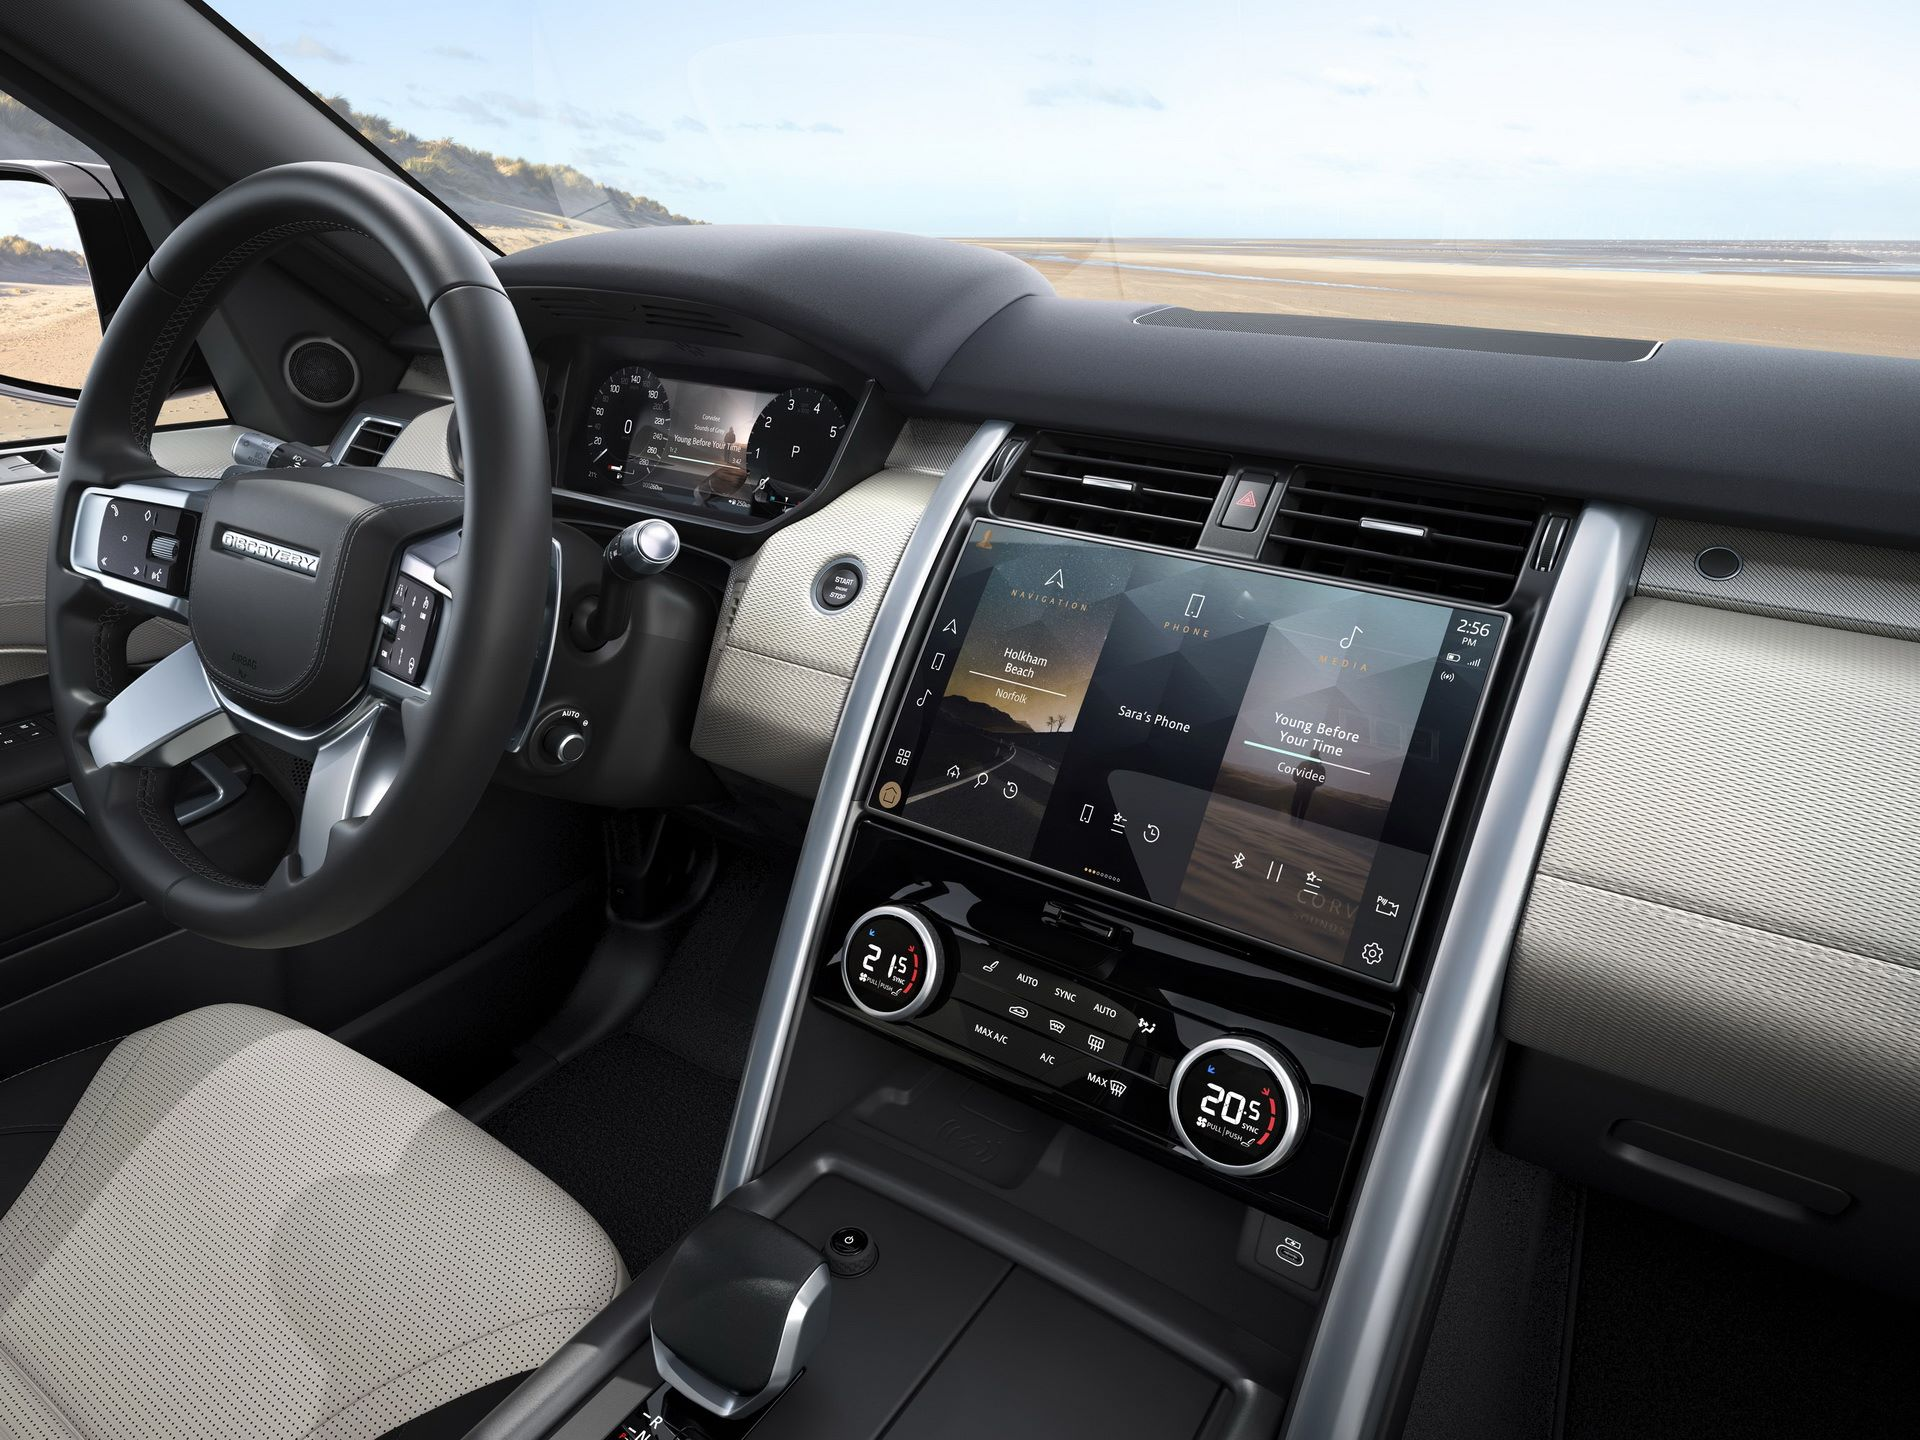 2021-Land-Rover-Discovery-43-1